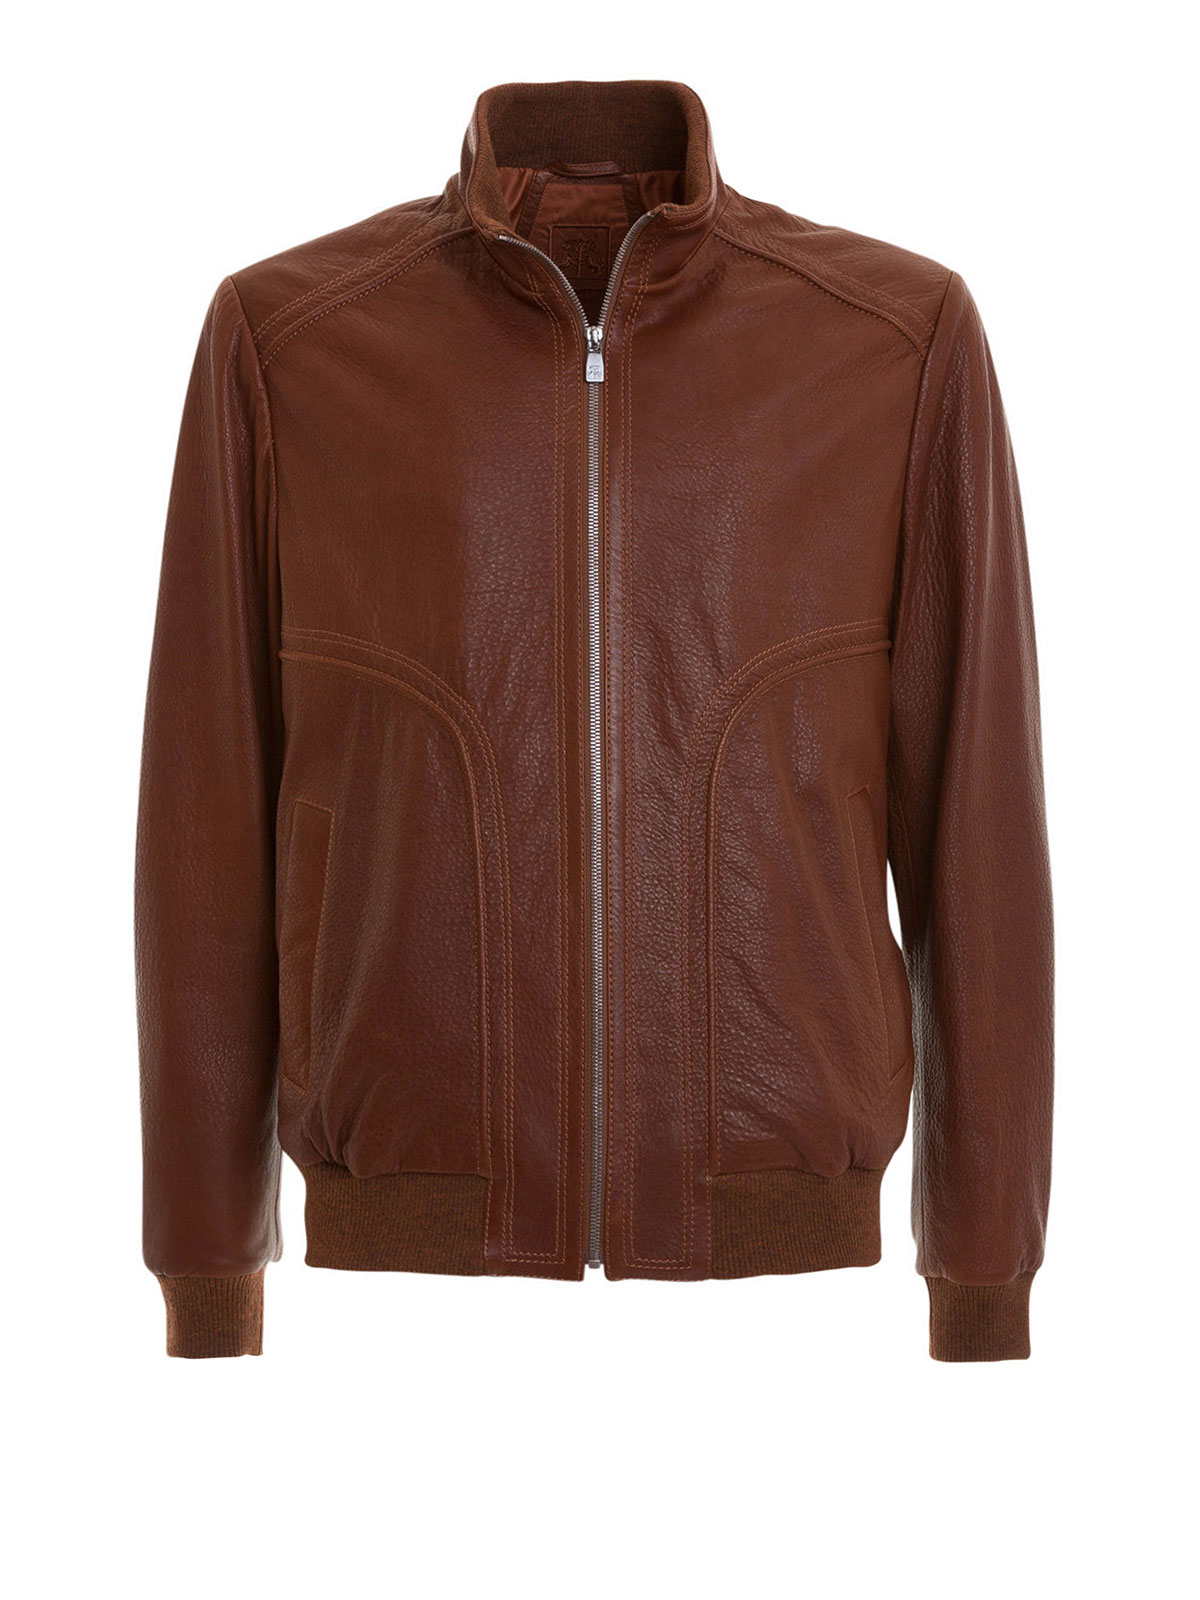 Shop Wilsons Leather for men's leather bomber jackets and more. Get high quality men's leather bomber jackets at exceptional values.